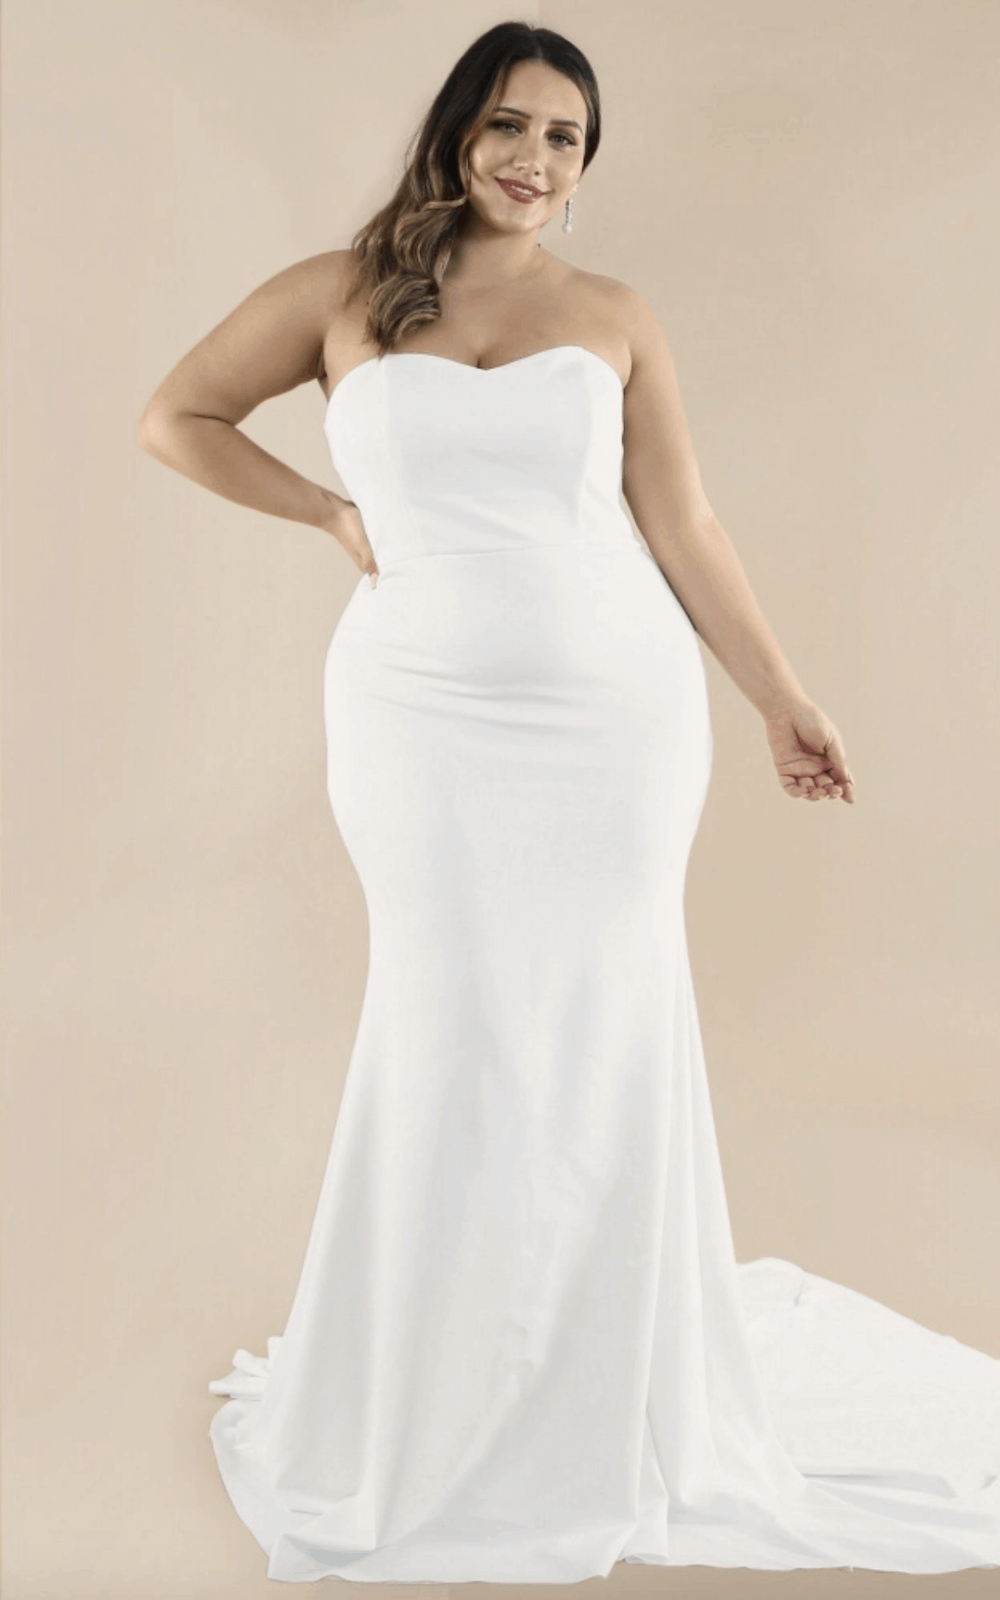 Plus Size Bridal Gowns and Wedding Dresses Perfect for Curvy Brides Sweetheart Strapless Train 2